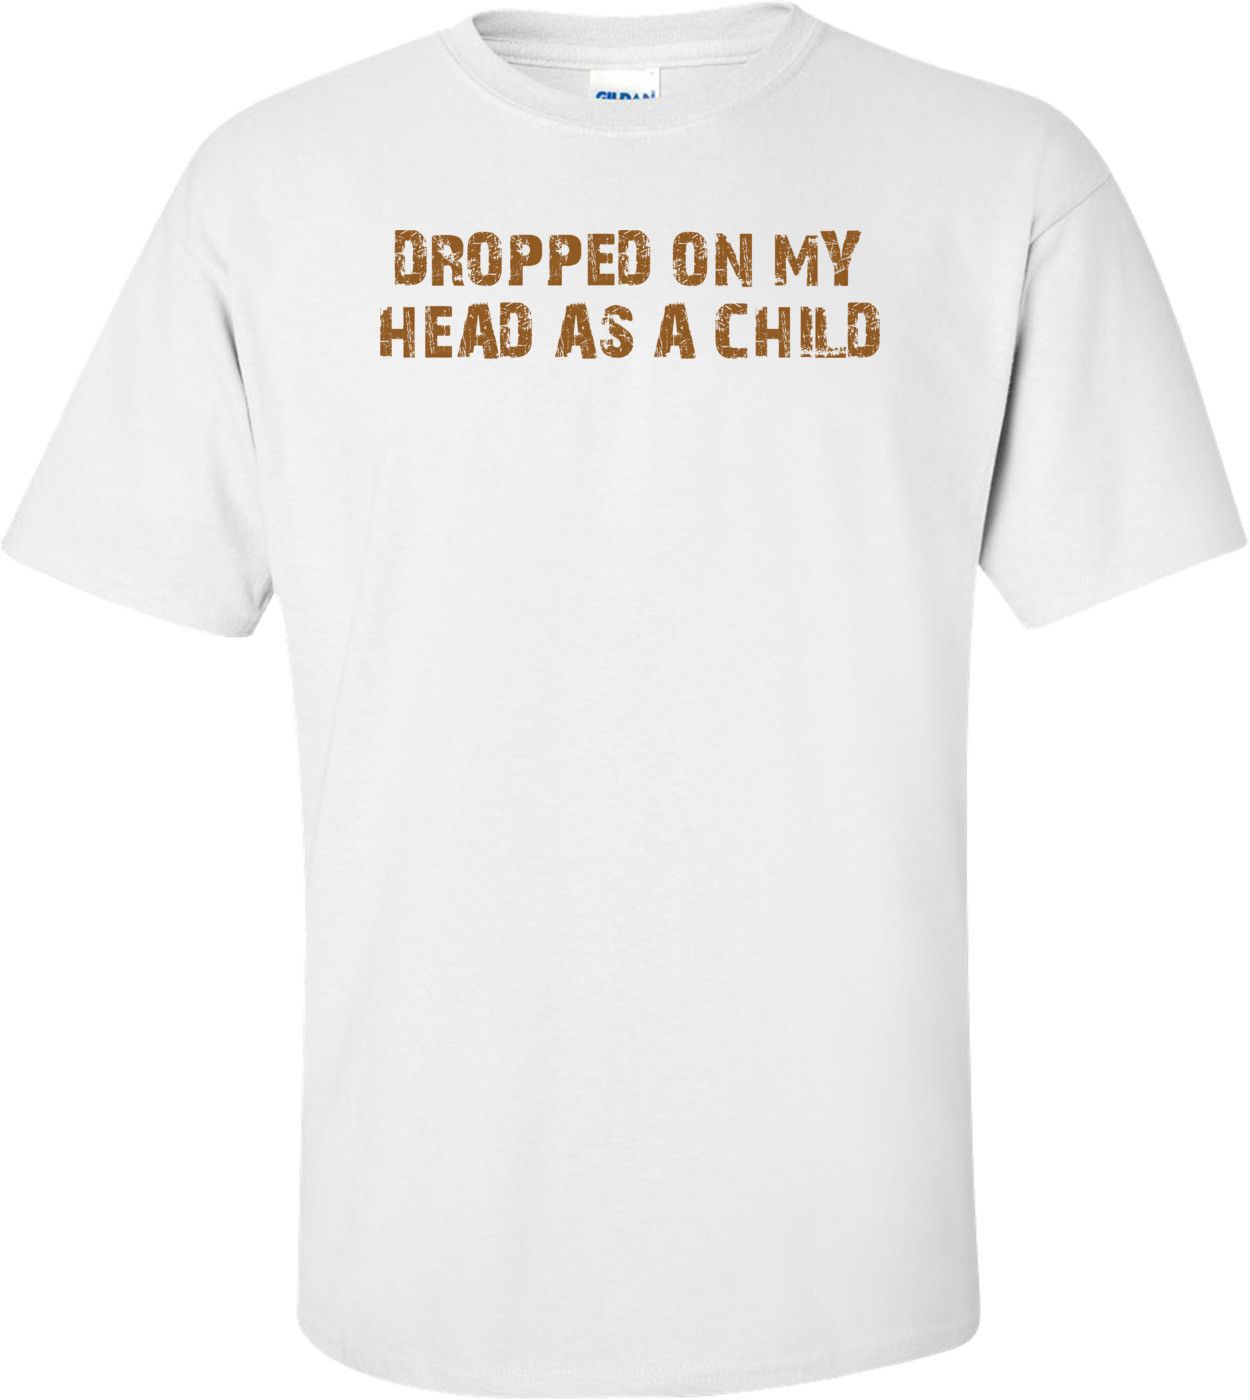 DROPPED ON MY HEAD AS A CHILD Shirt